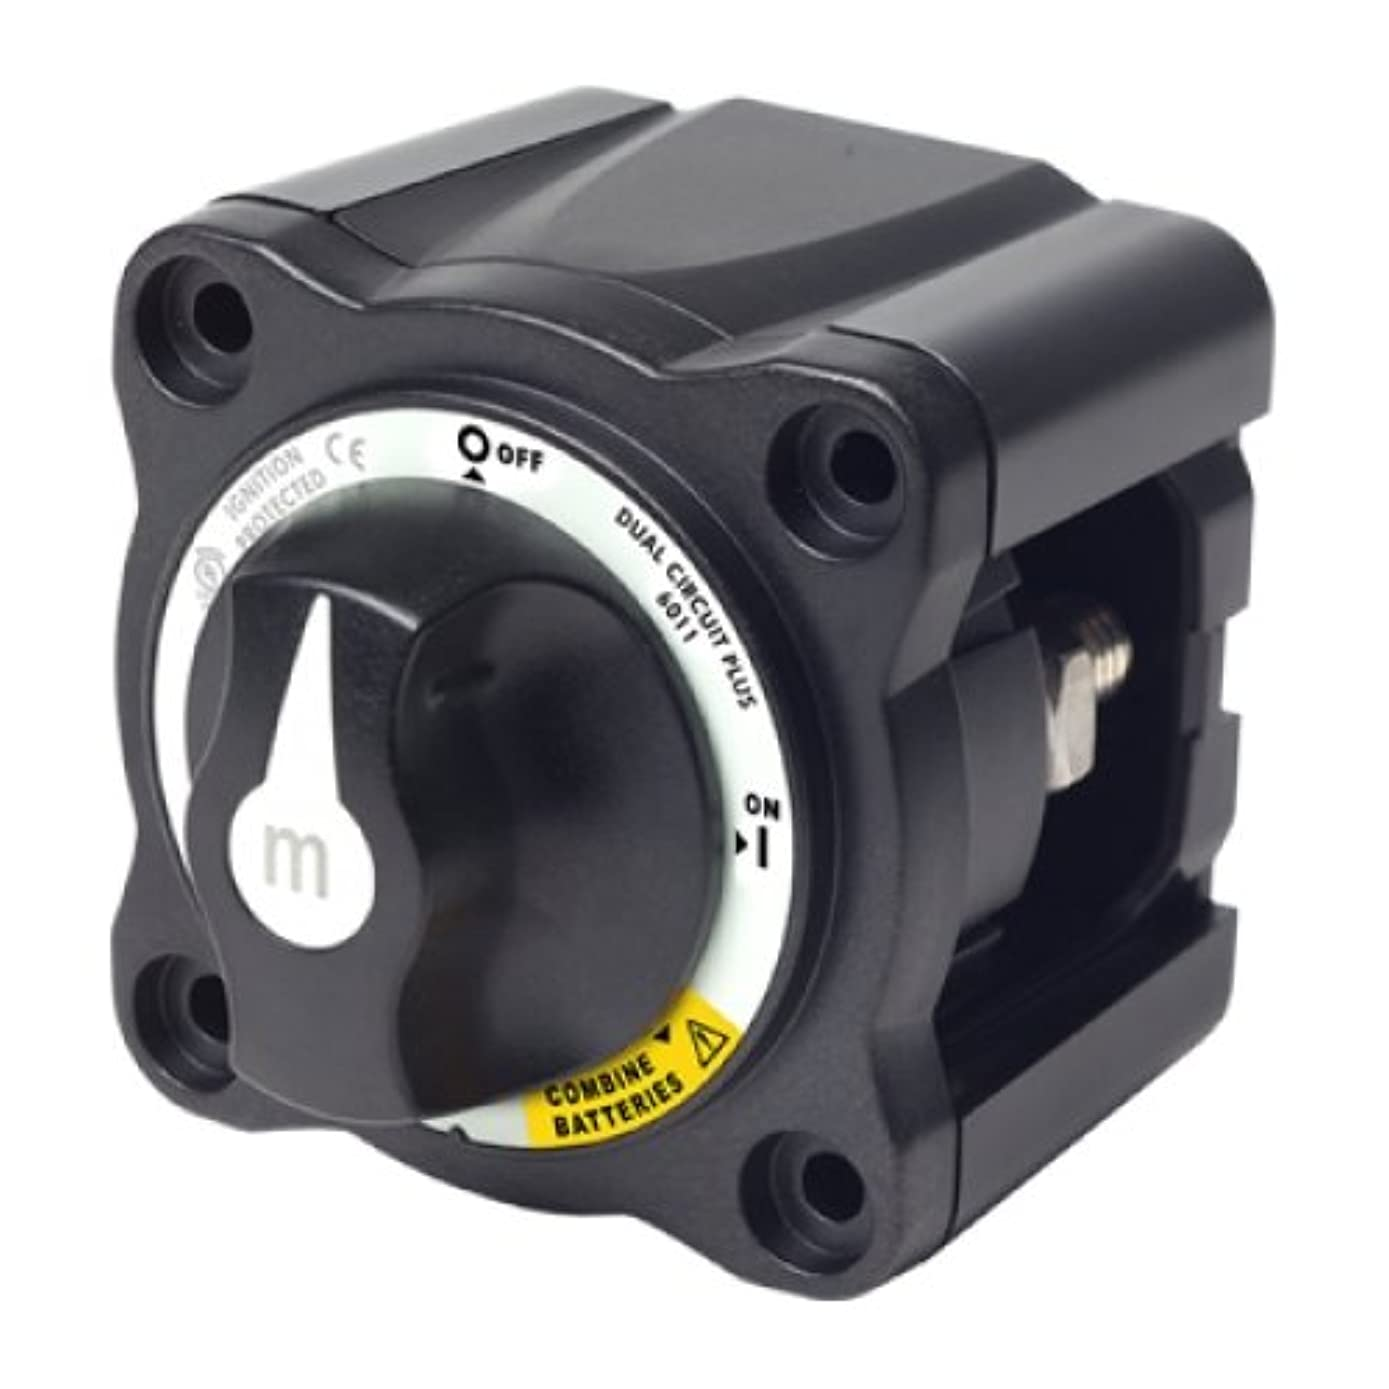 BLUE SEA SYSTEMS Mini Battery Switch, MFG# 6011200, Black, 300A cont., 500A int., 32VDC. Positions: two-circuit on-off with combiner / BS-6011200 /